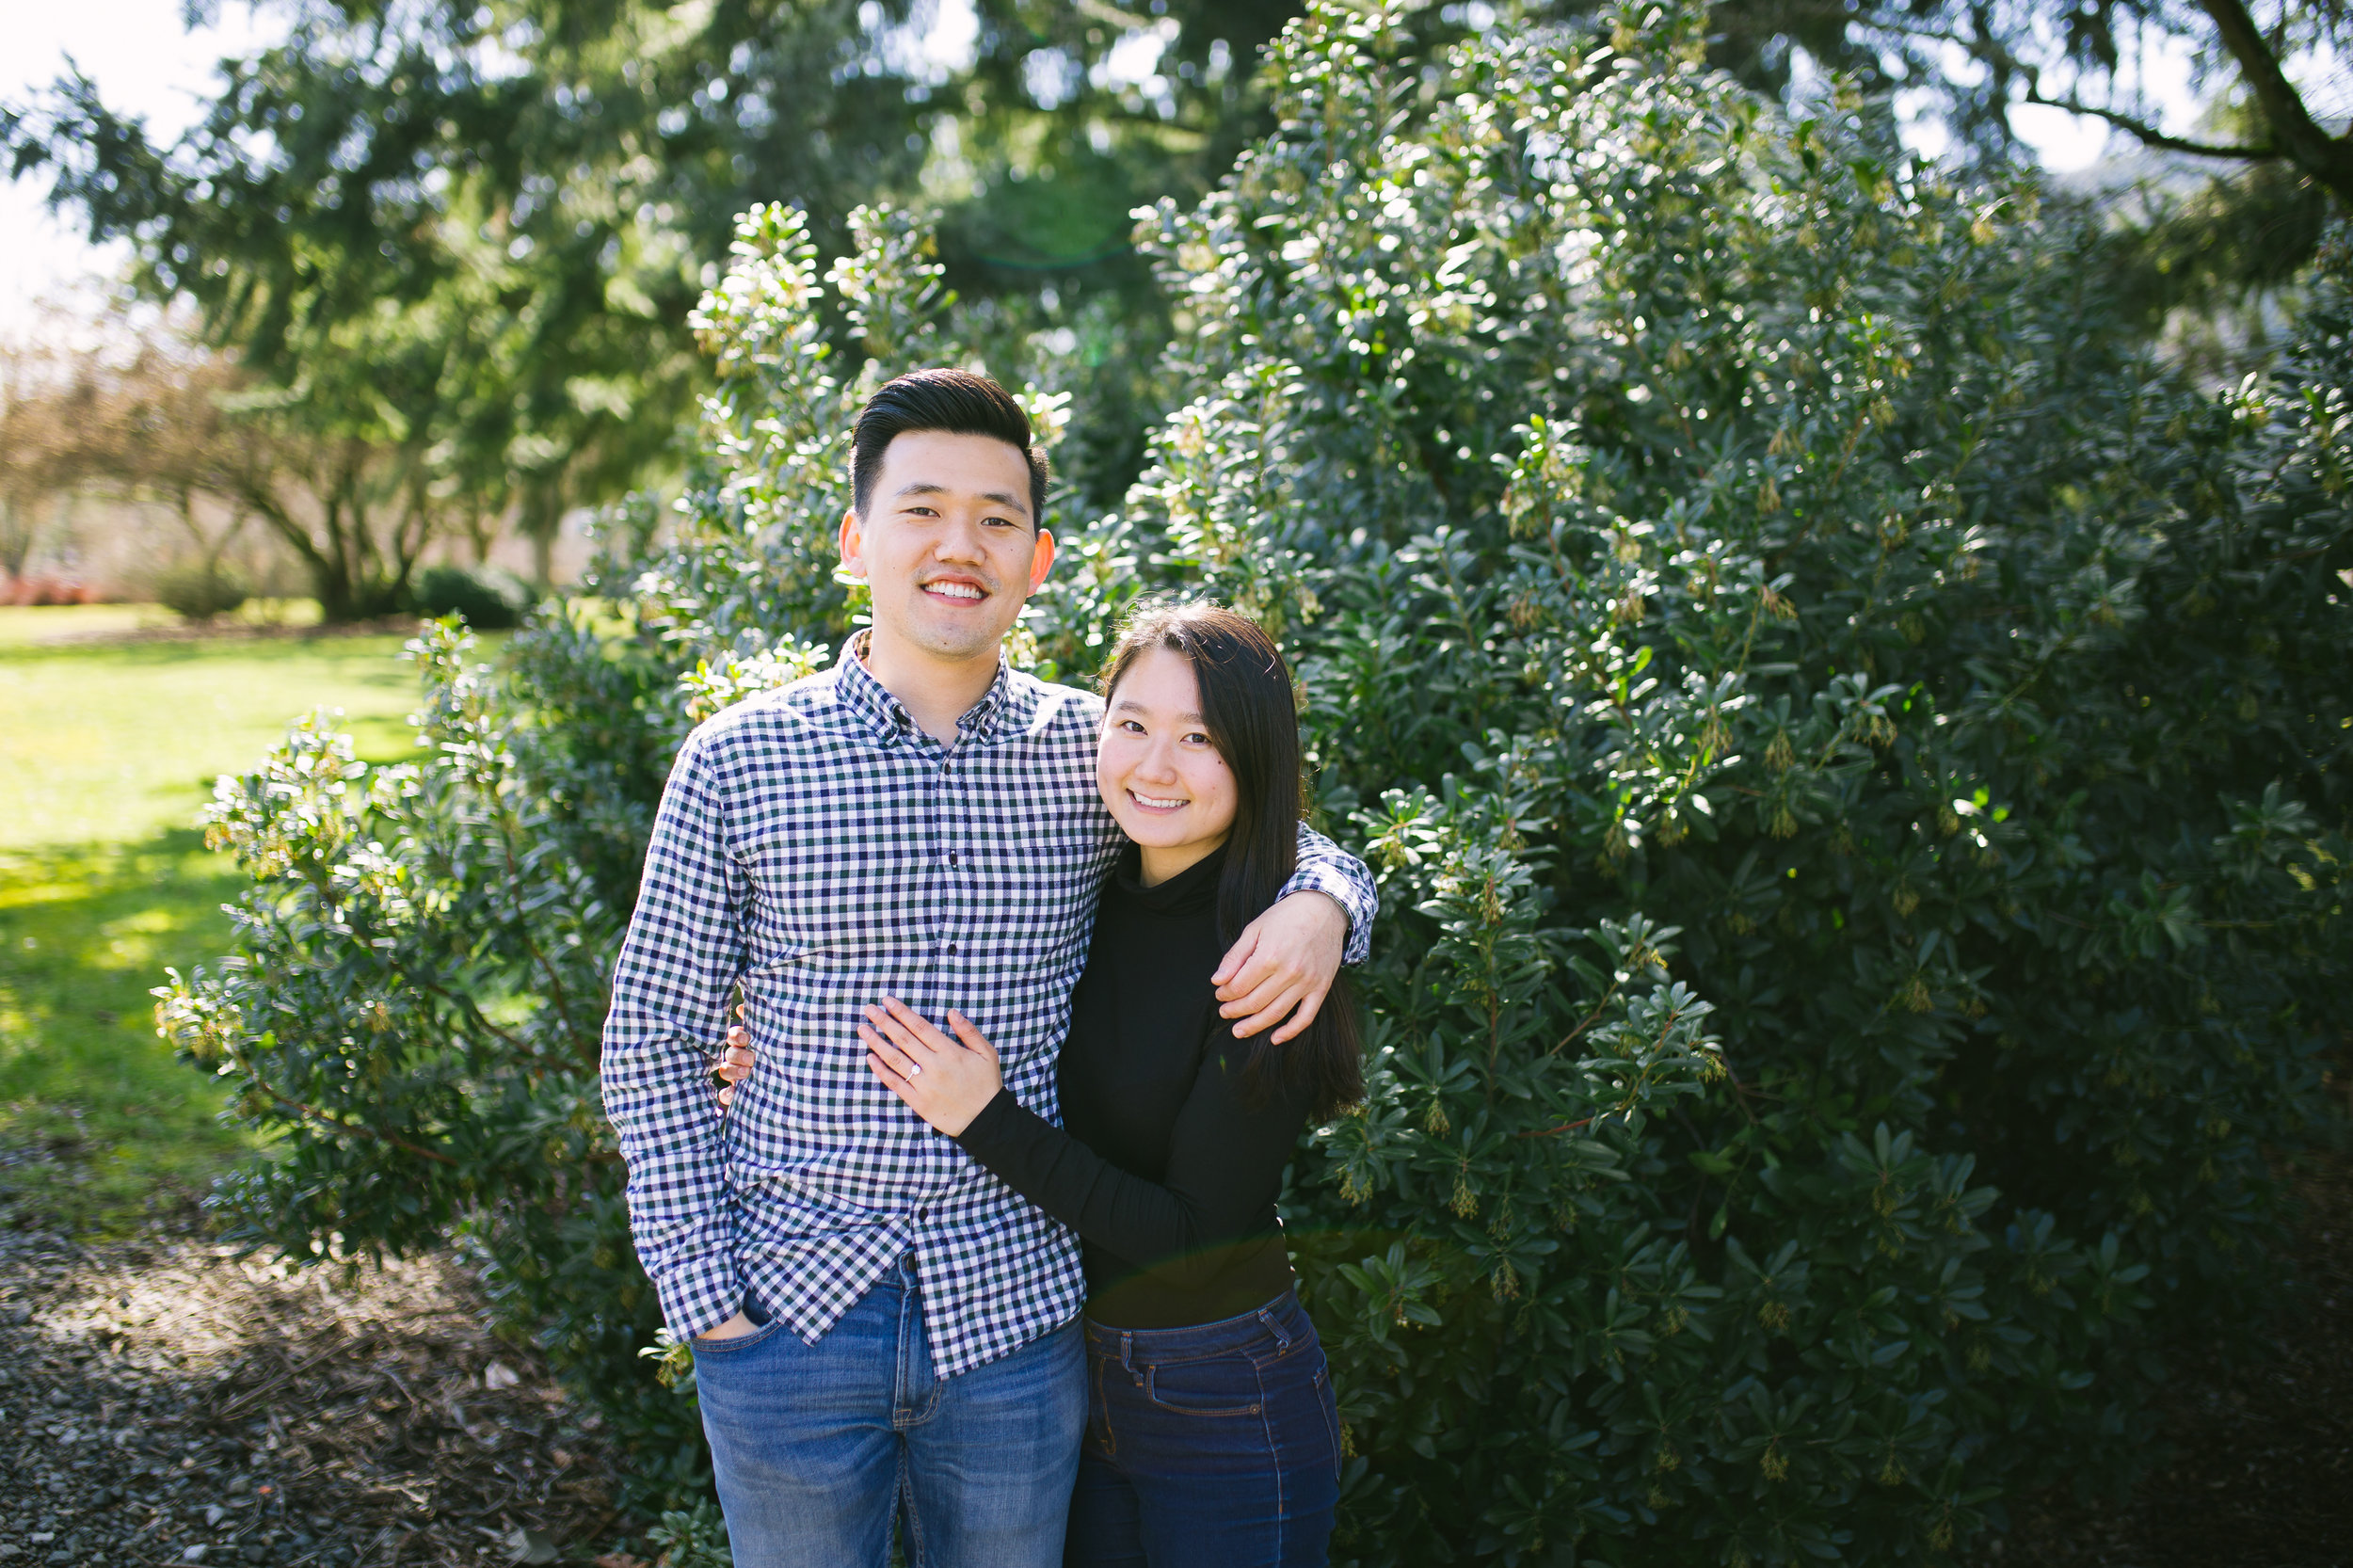 cathedral-park-engagement-photography-10.jpg